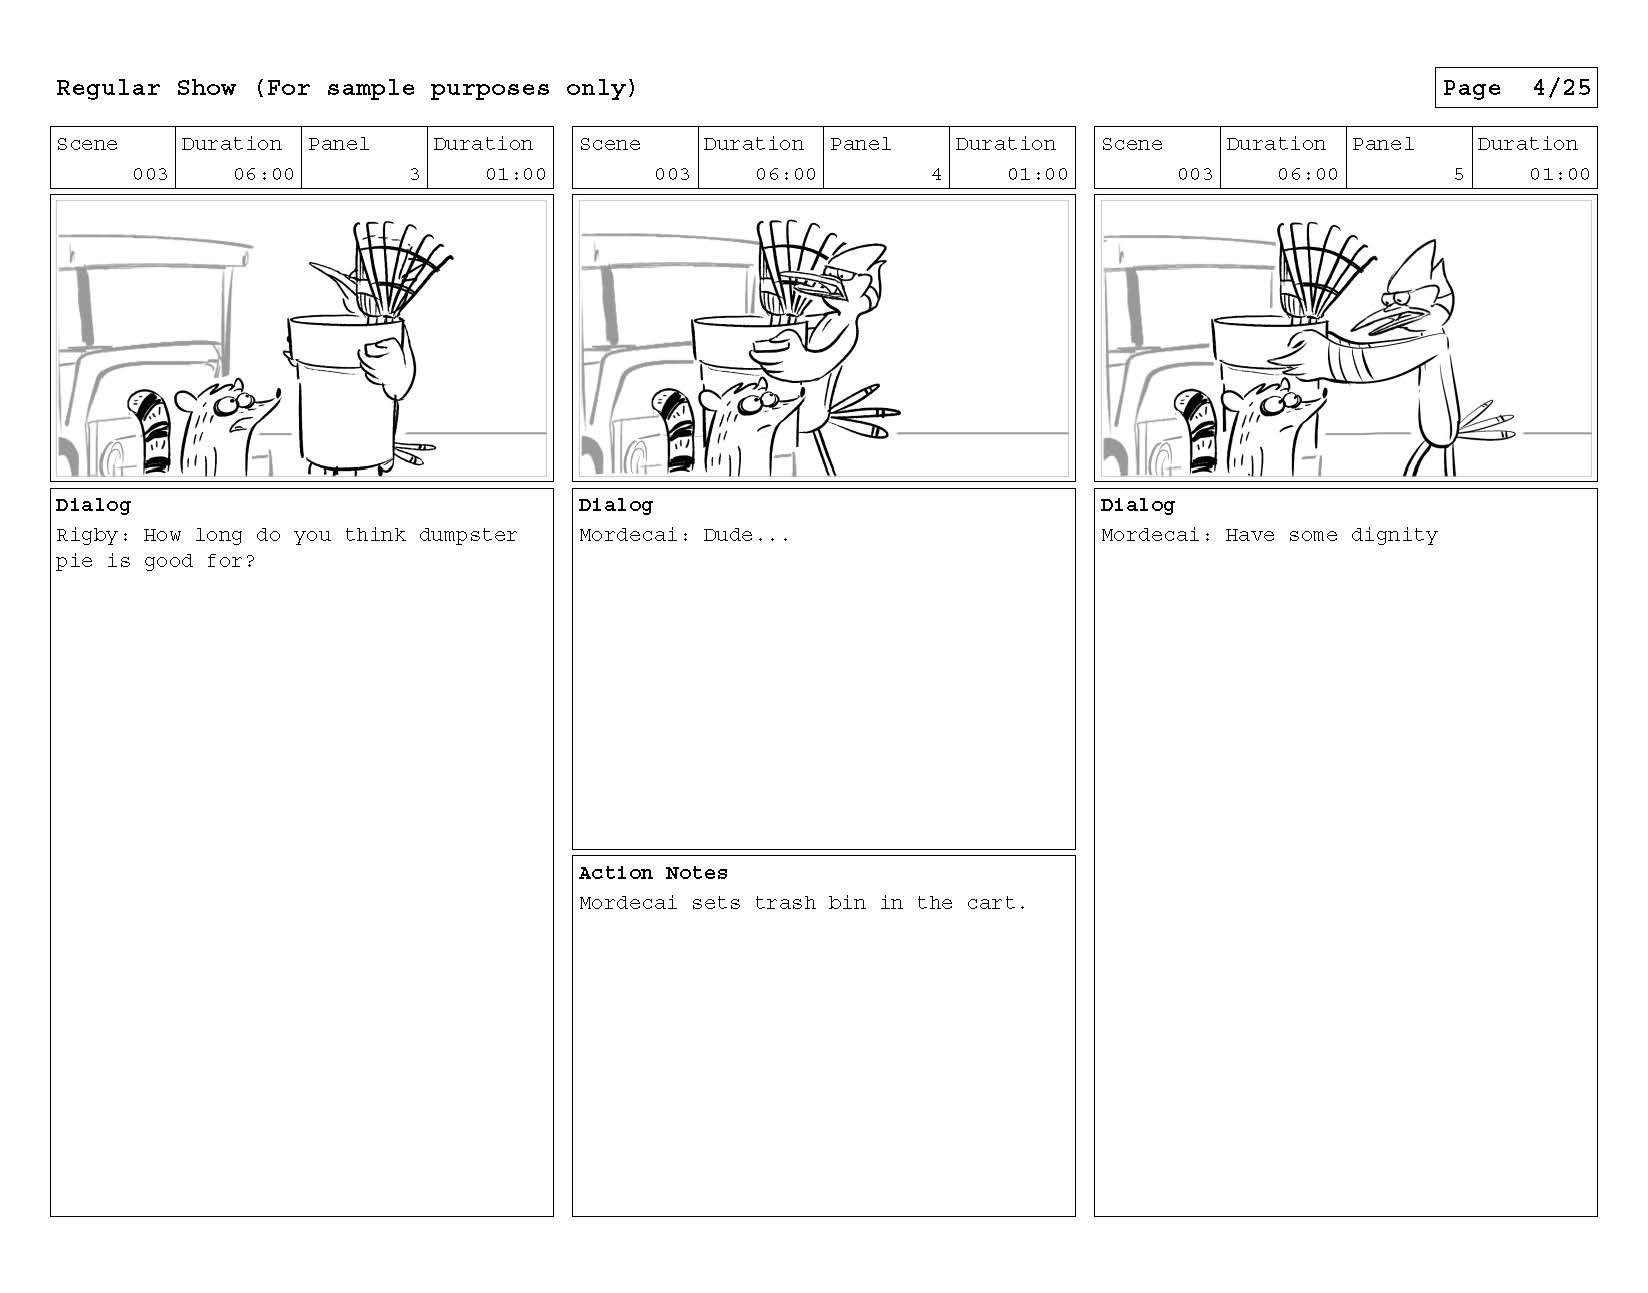 thelfer_rs_sample_Page_05.jpg